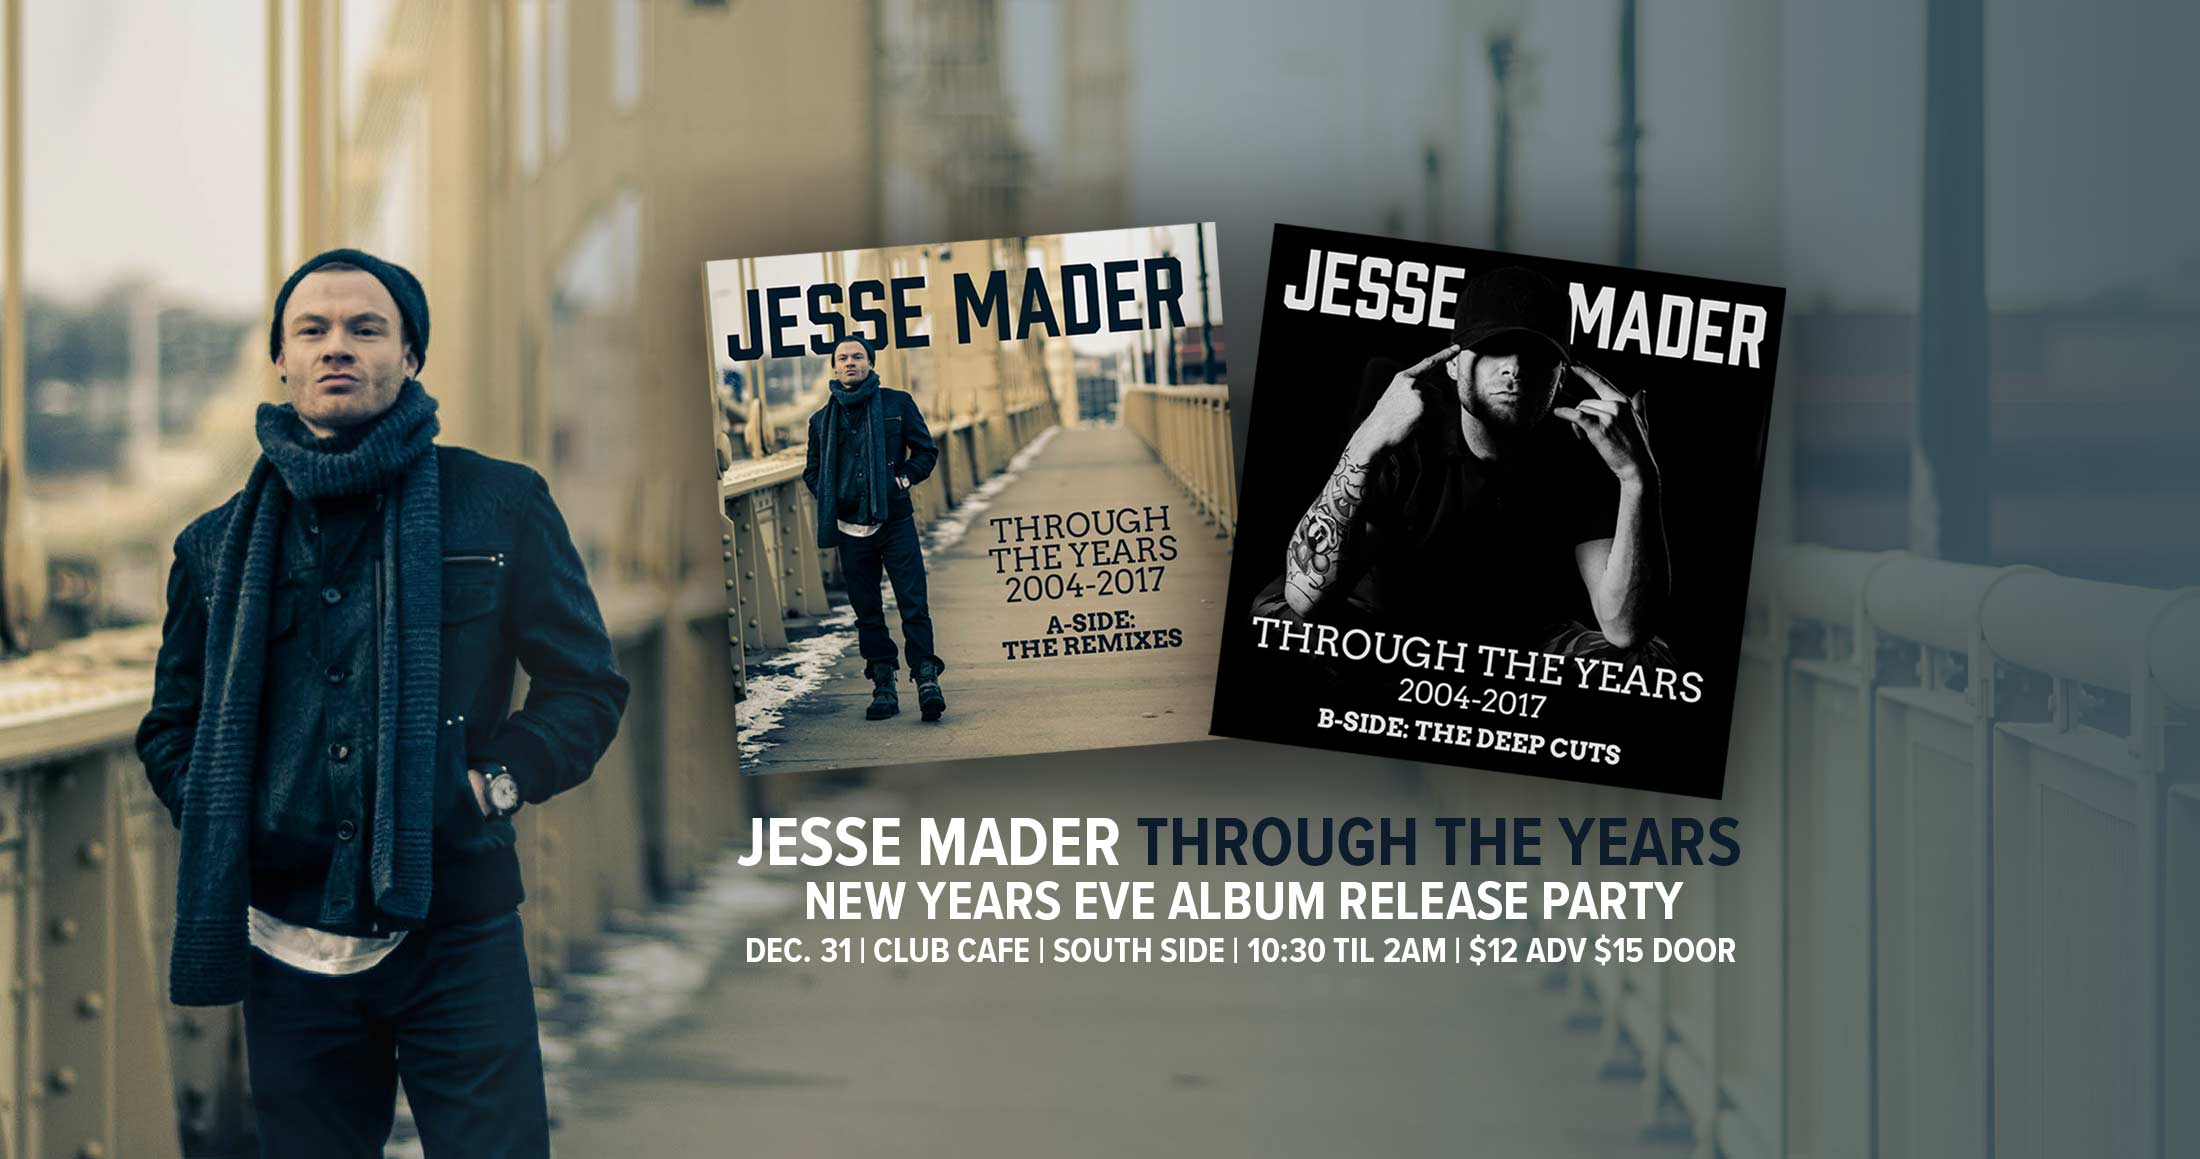 jesse-mader-album-release-party-flyer-web-rotator-04